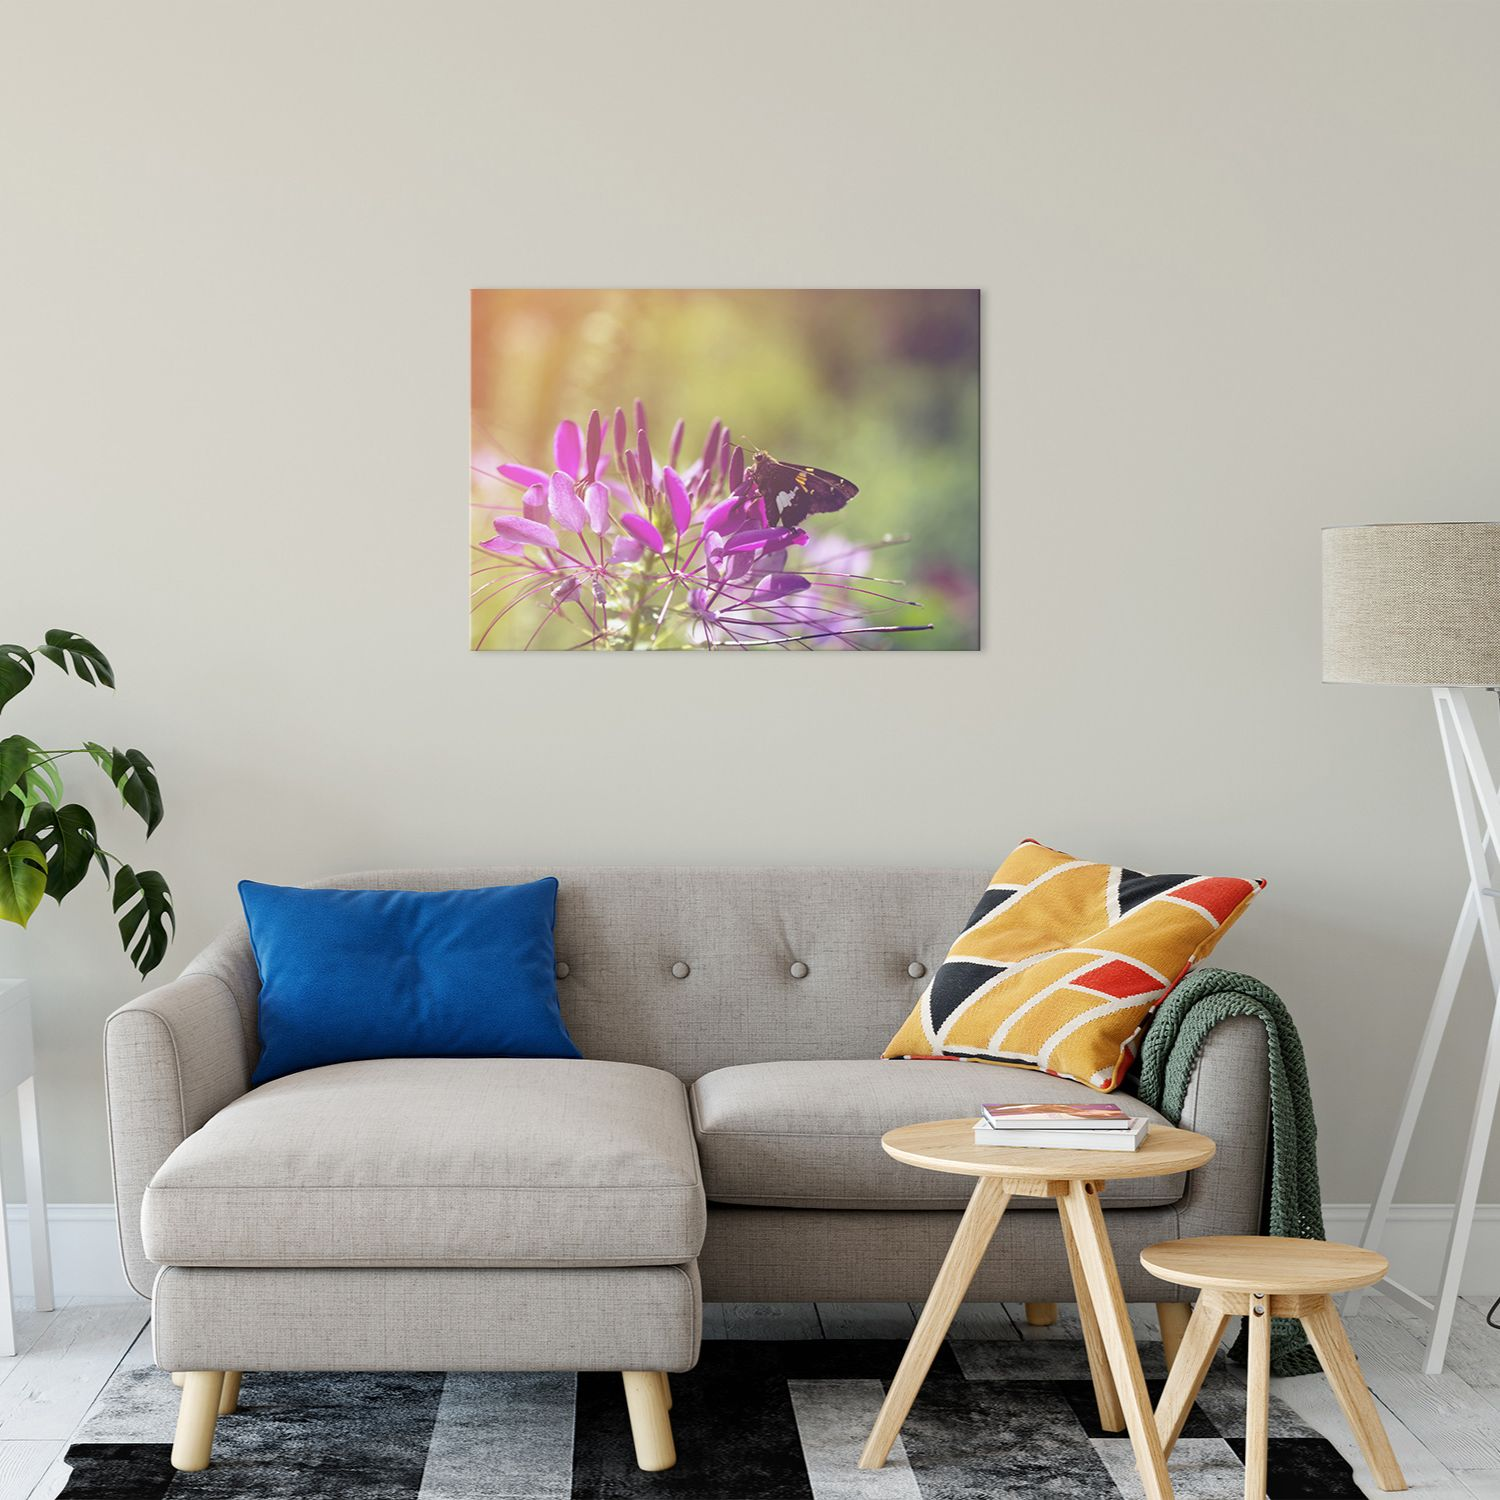 Spider Flower in Glory Light With Spotted Moth Nature Photography Wall Art Prints Unframed and Fine Art Canvas Prints